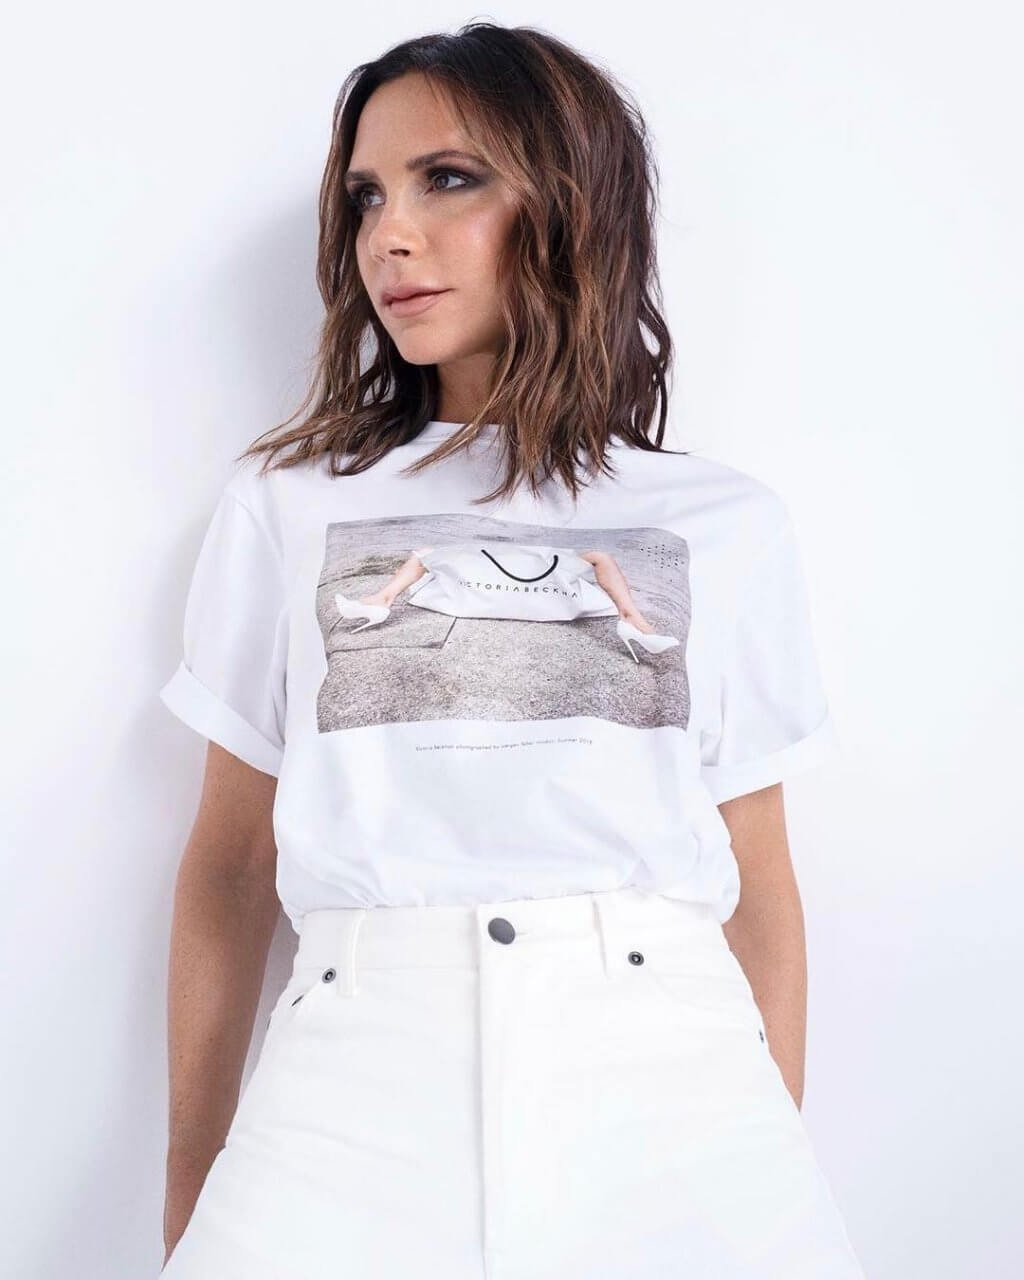 victoriabeckham spice girls instagram